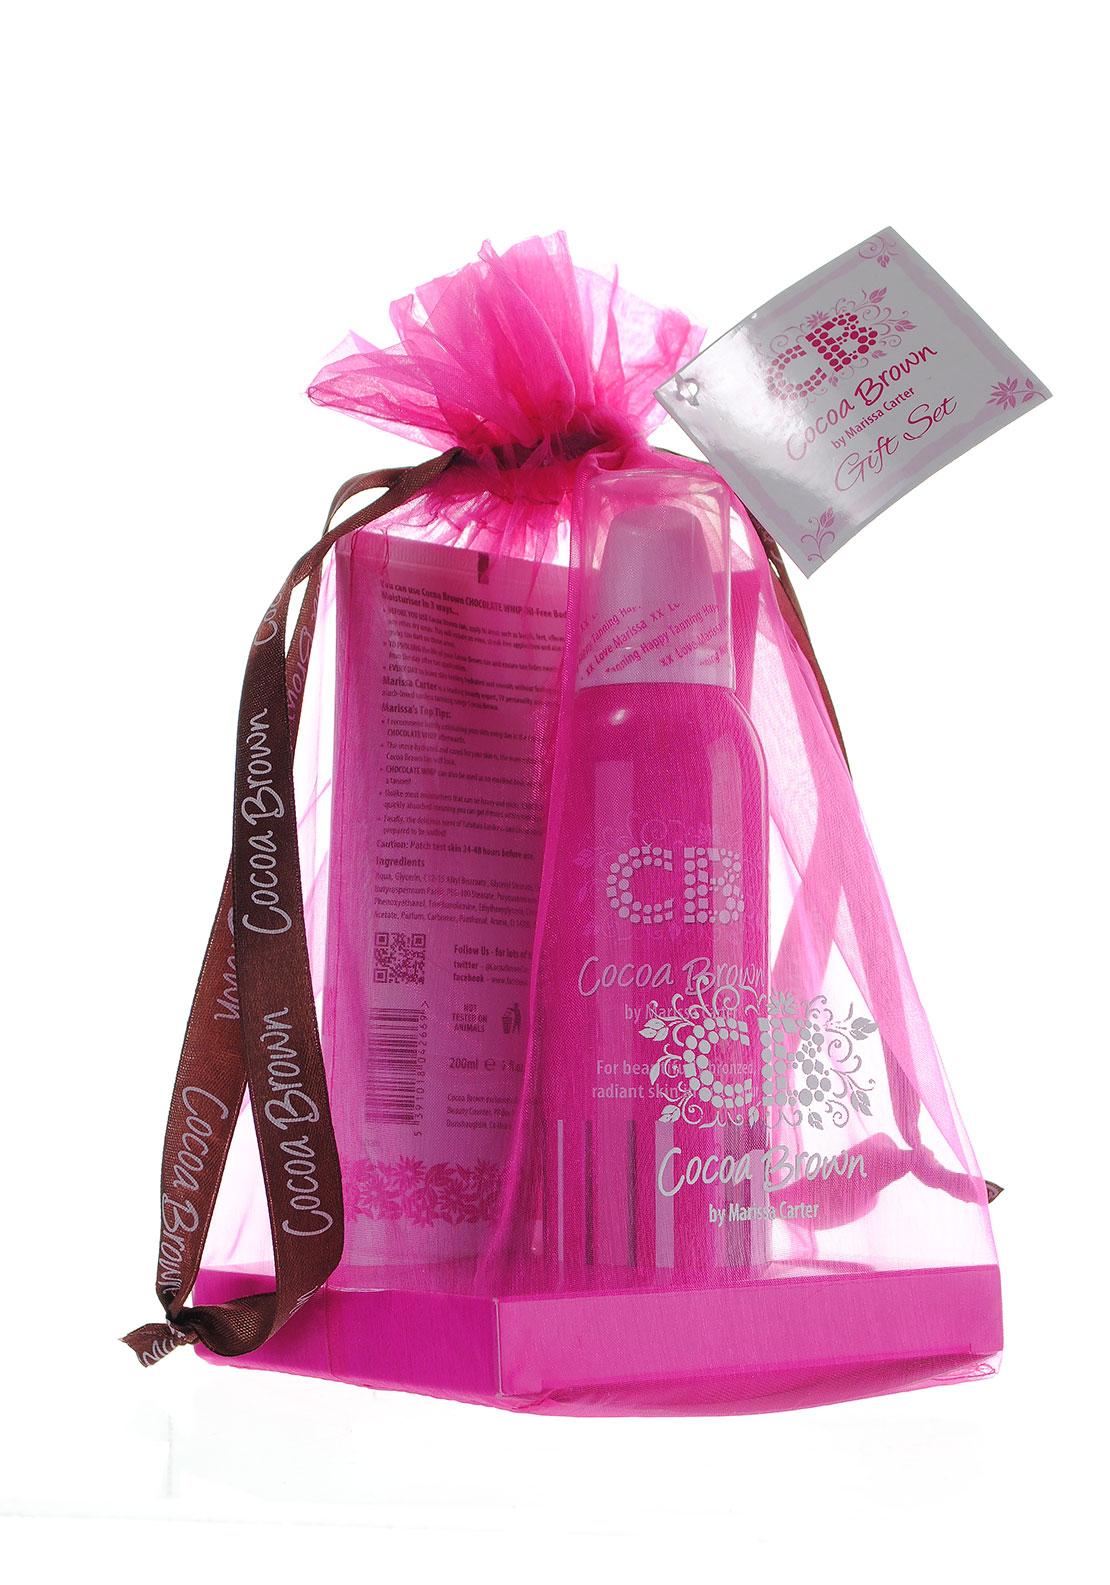 Cocoa Brown by Marissa Carter Tanning Gift Set